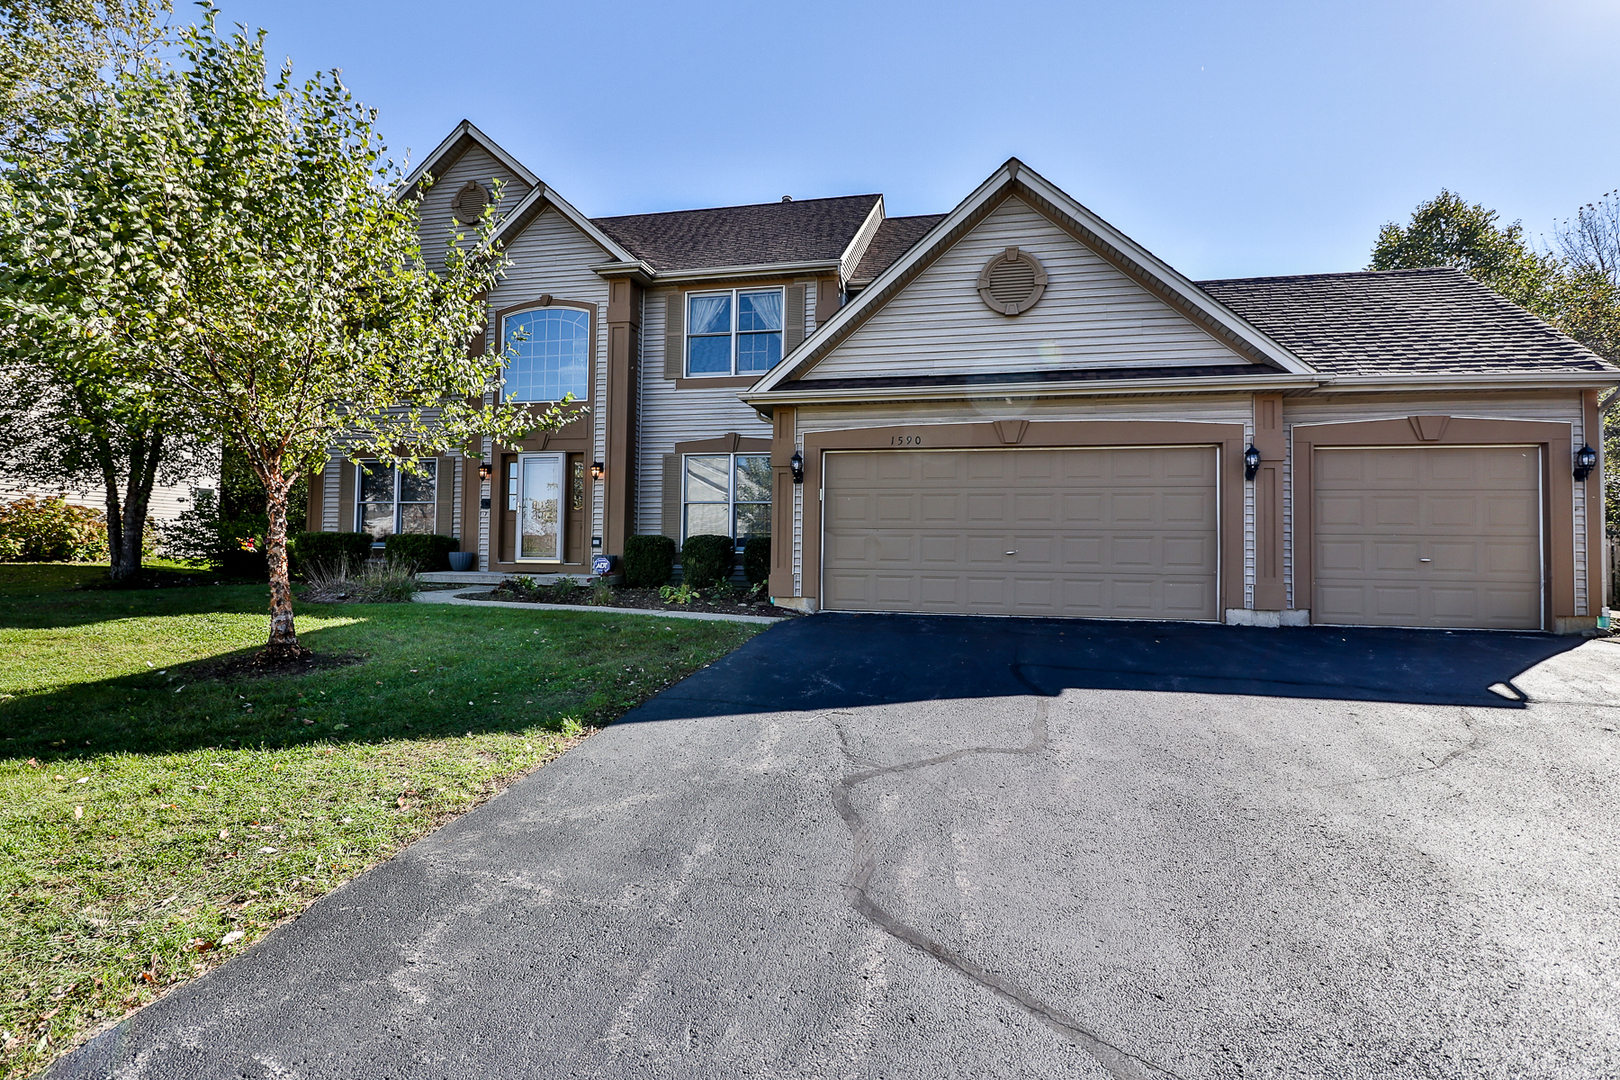 1590 SOUTHRIDGE Trail, Algonquin in Kane County, IL 60102 Home for Sale